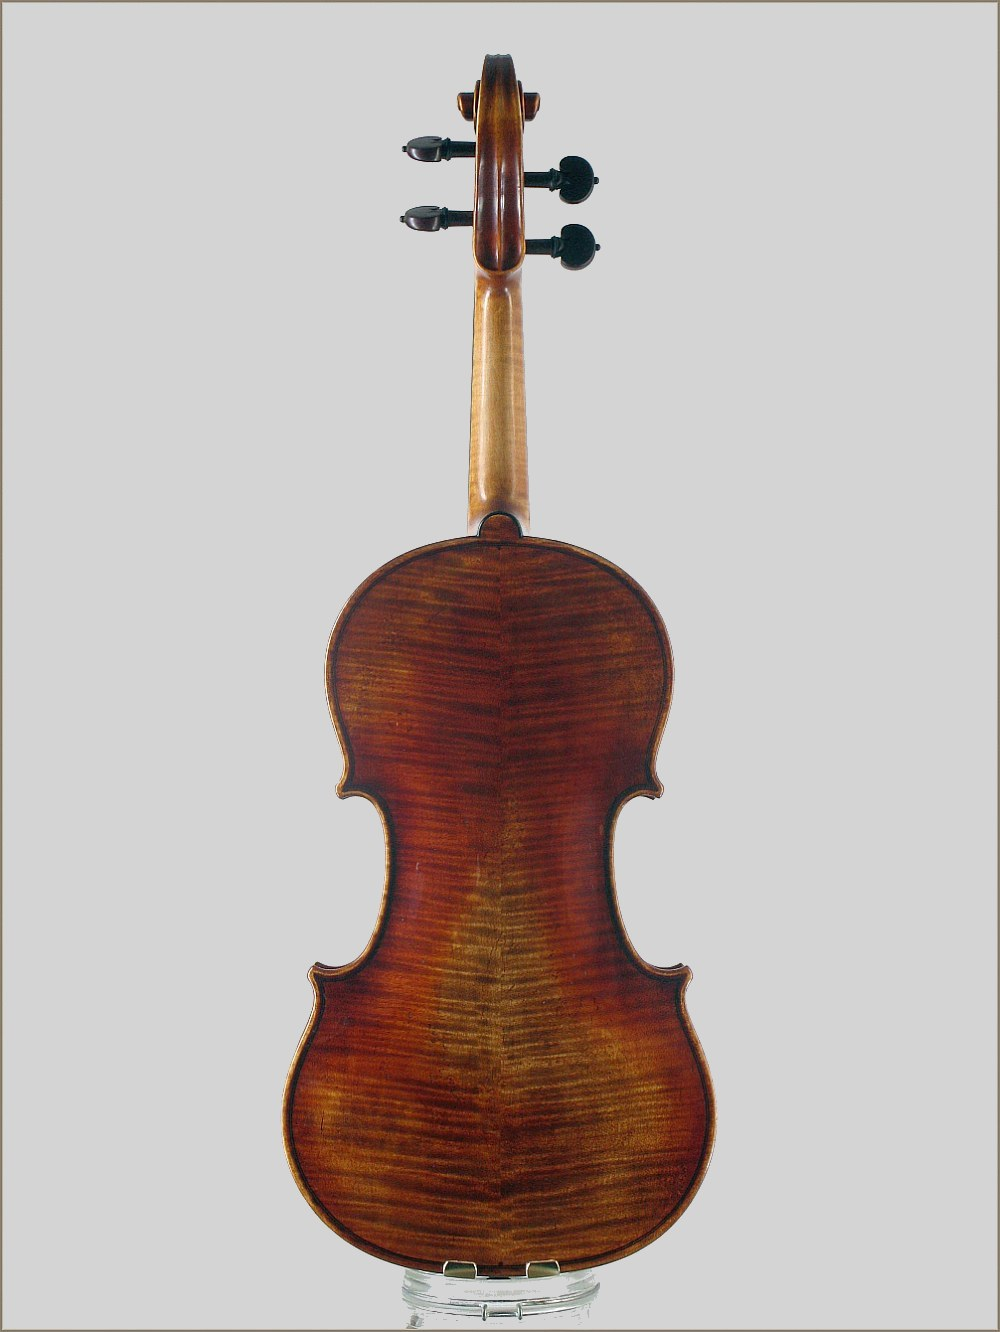 Sielam accento model violins 4 4 violas 16 39 for Soil 1714 stradivarius